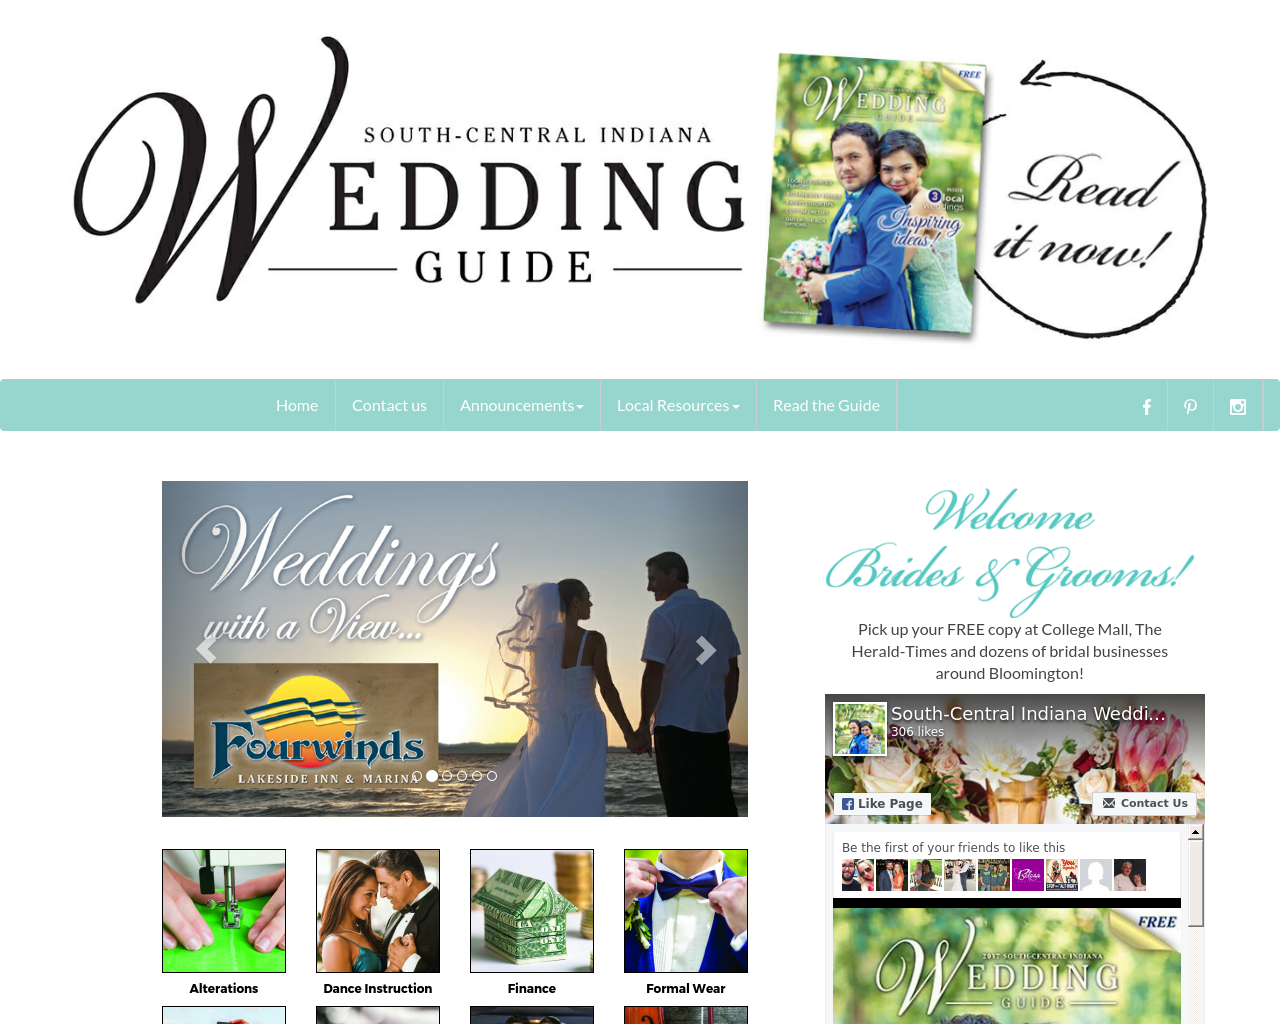 South-Central-Indiana-Bride's-Guide-Advertising-Reviews-Pricing